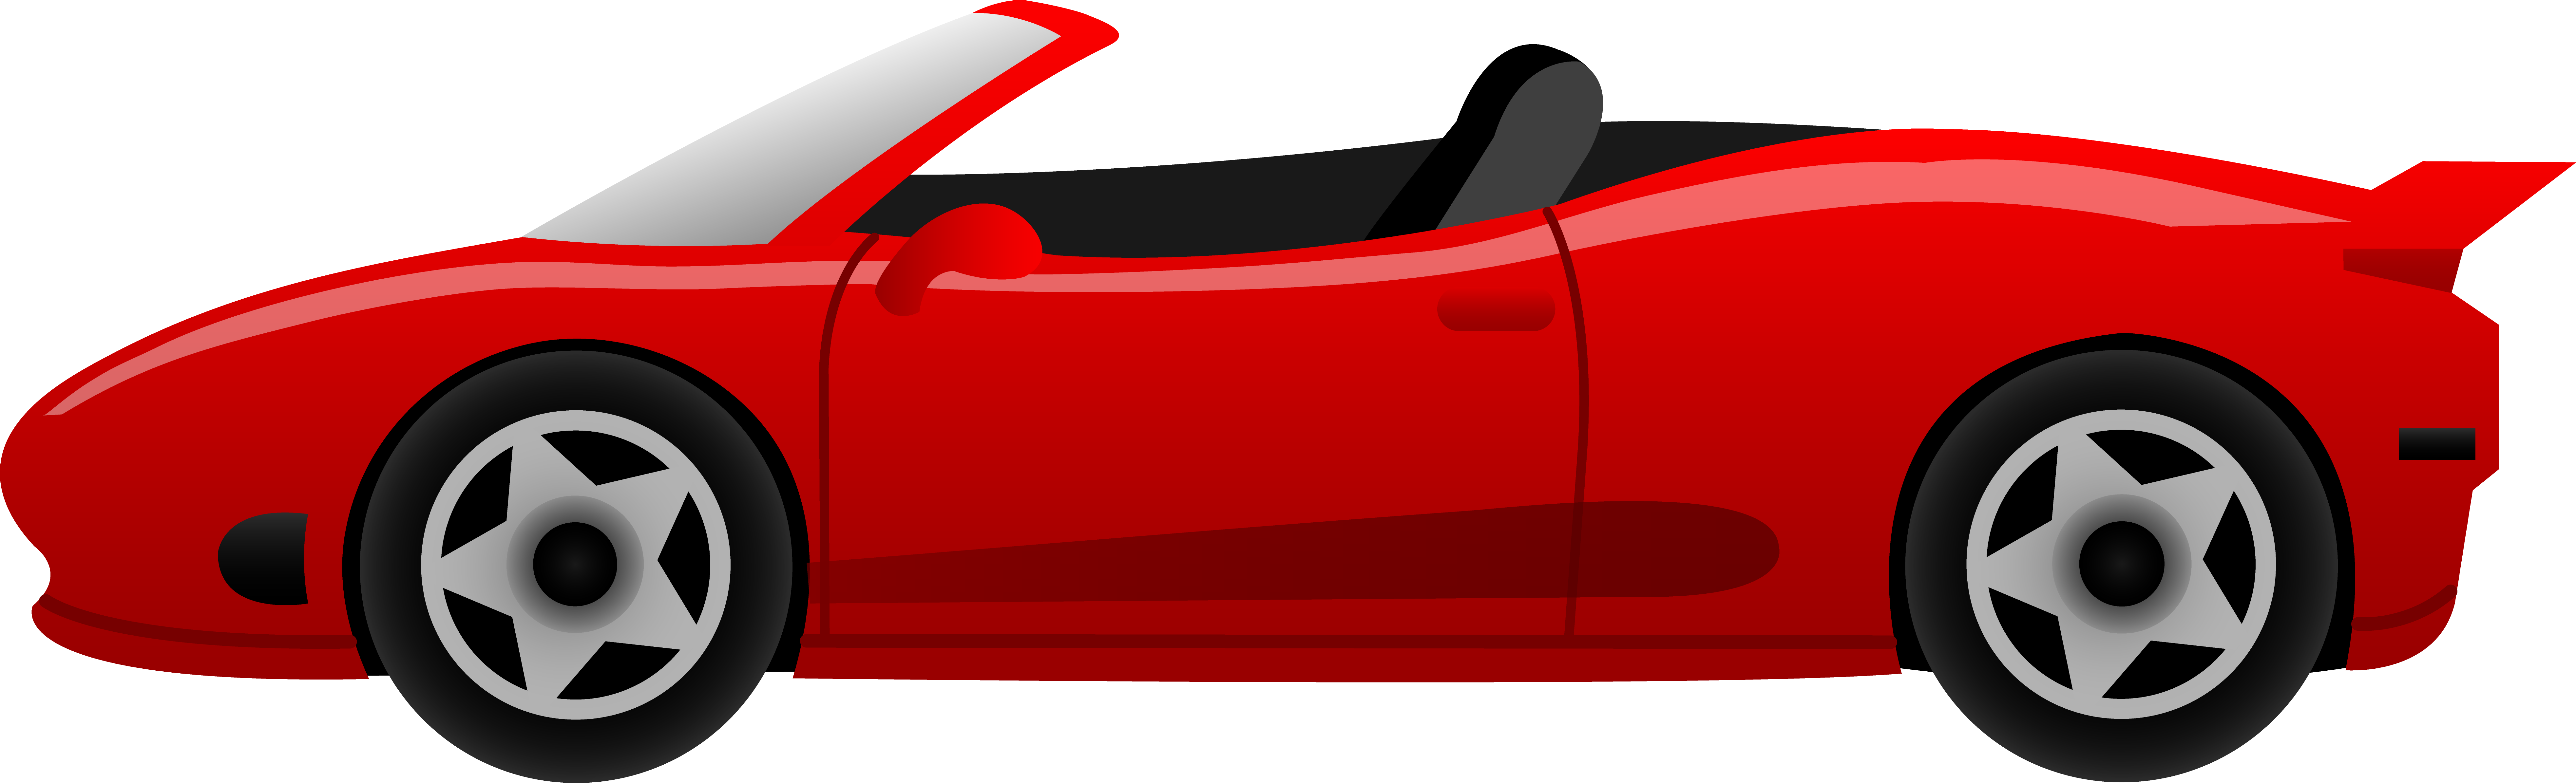 Sports Car Clipart Side View Free Clipart Images